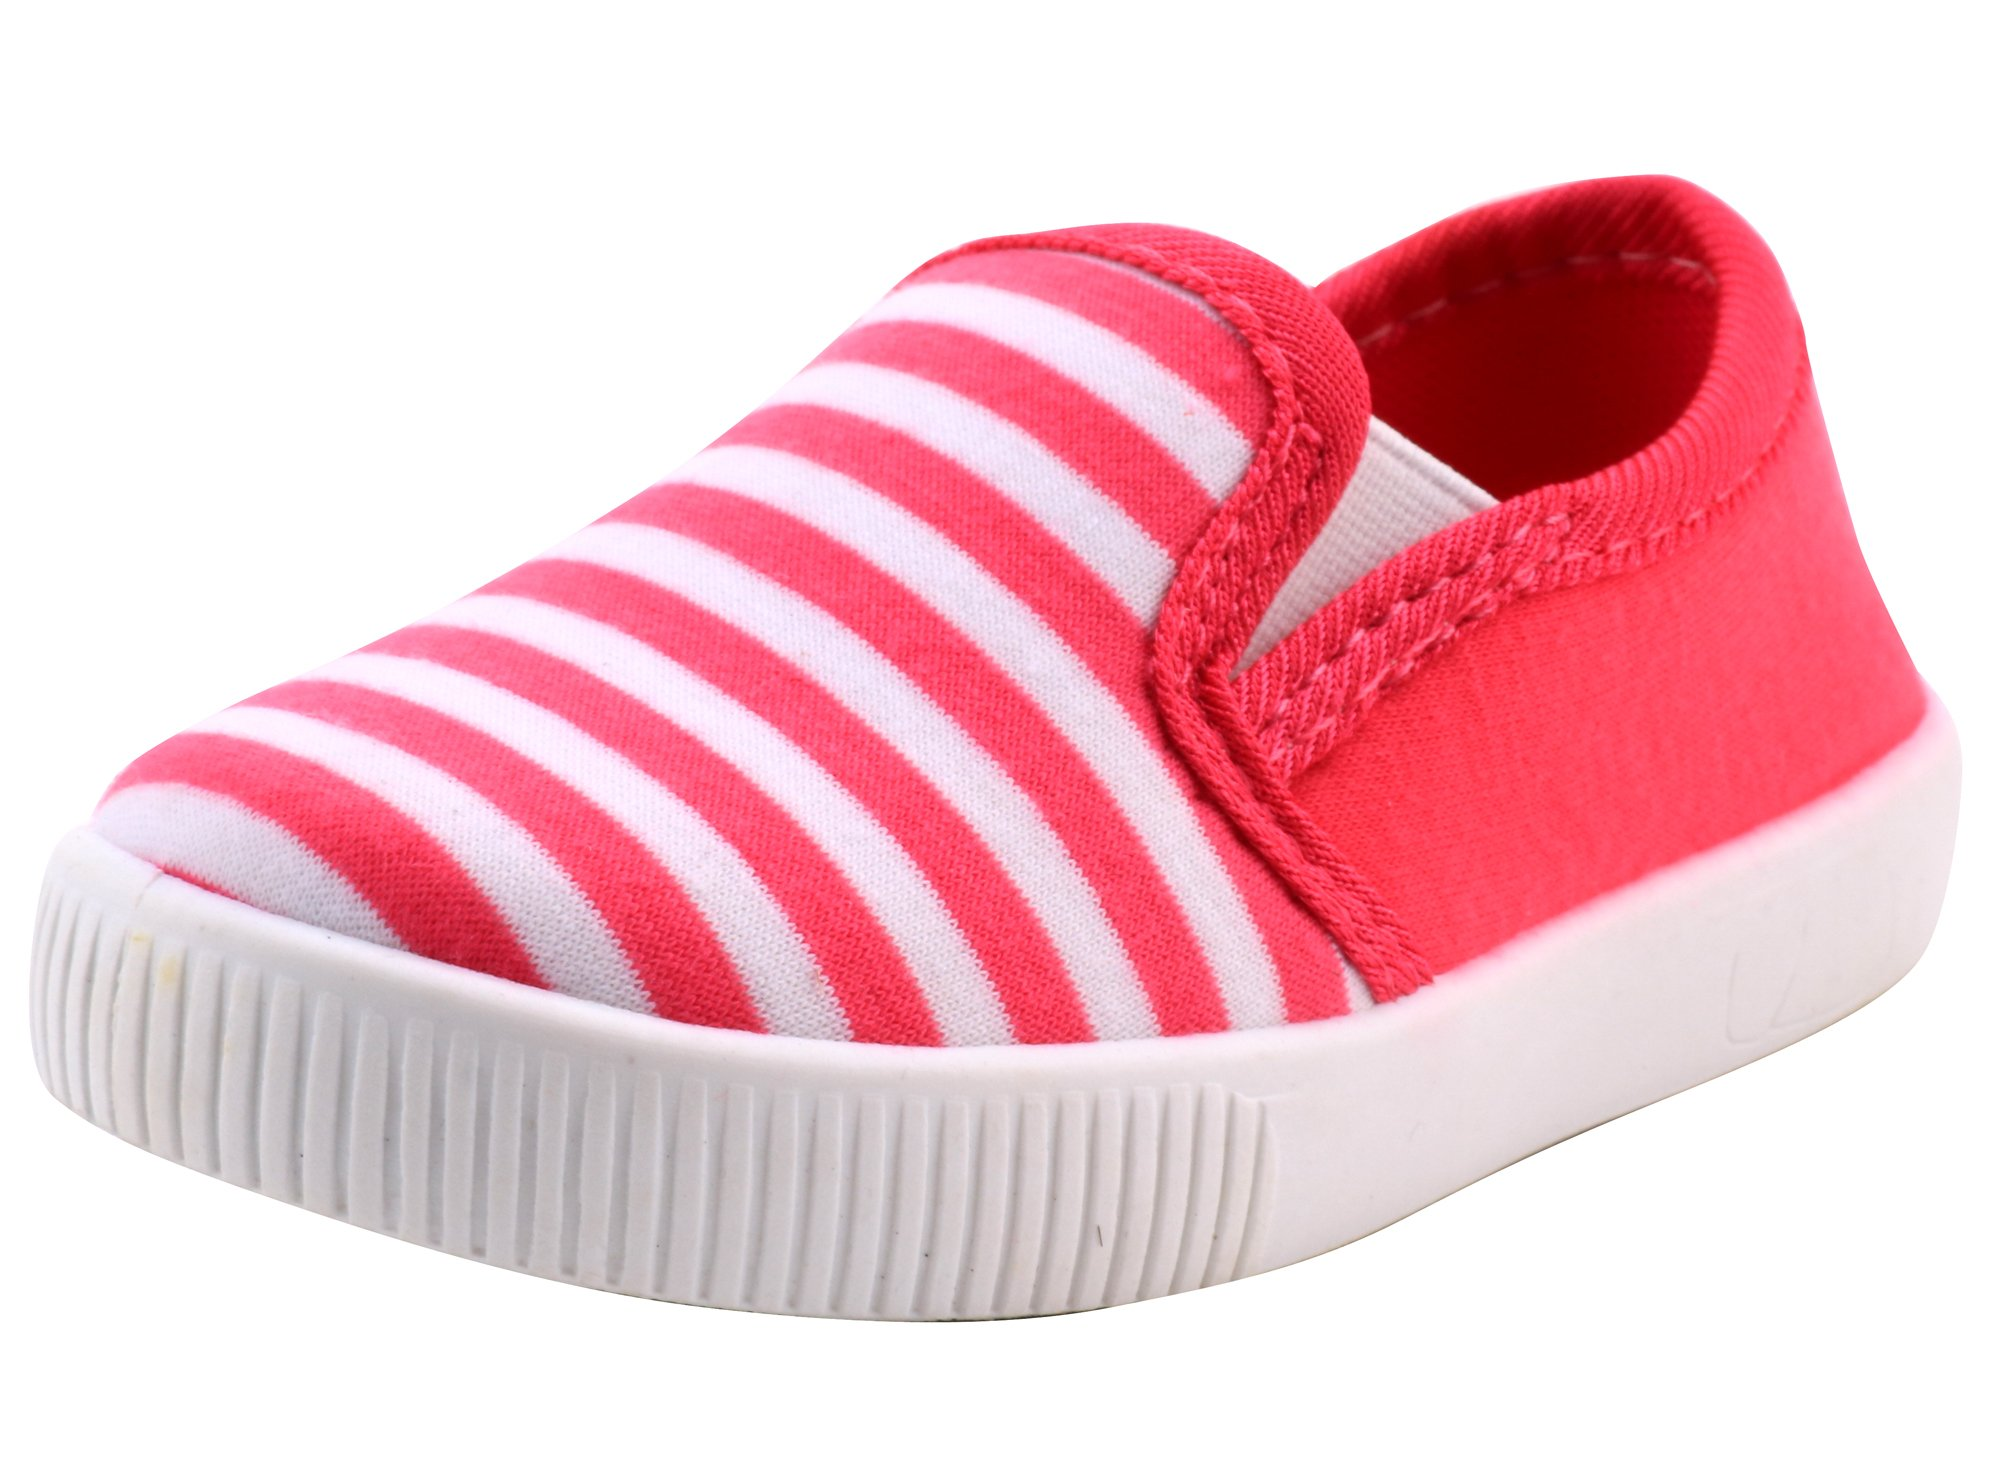 LONSOEN Toddler Boys Girls Fashion Casual Slip-on Loafers Classic Sneakers SHF105 Hot Pink CN20